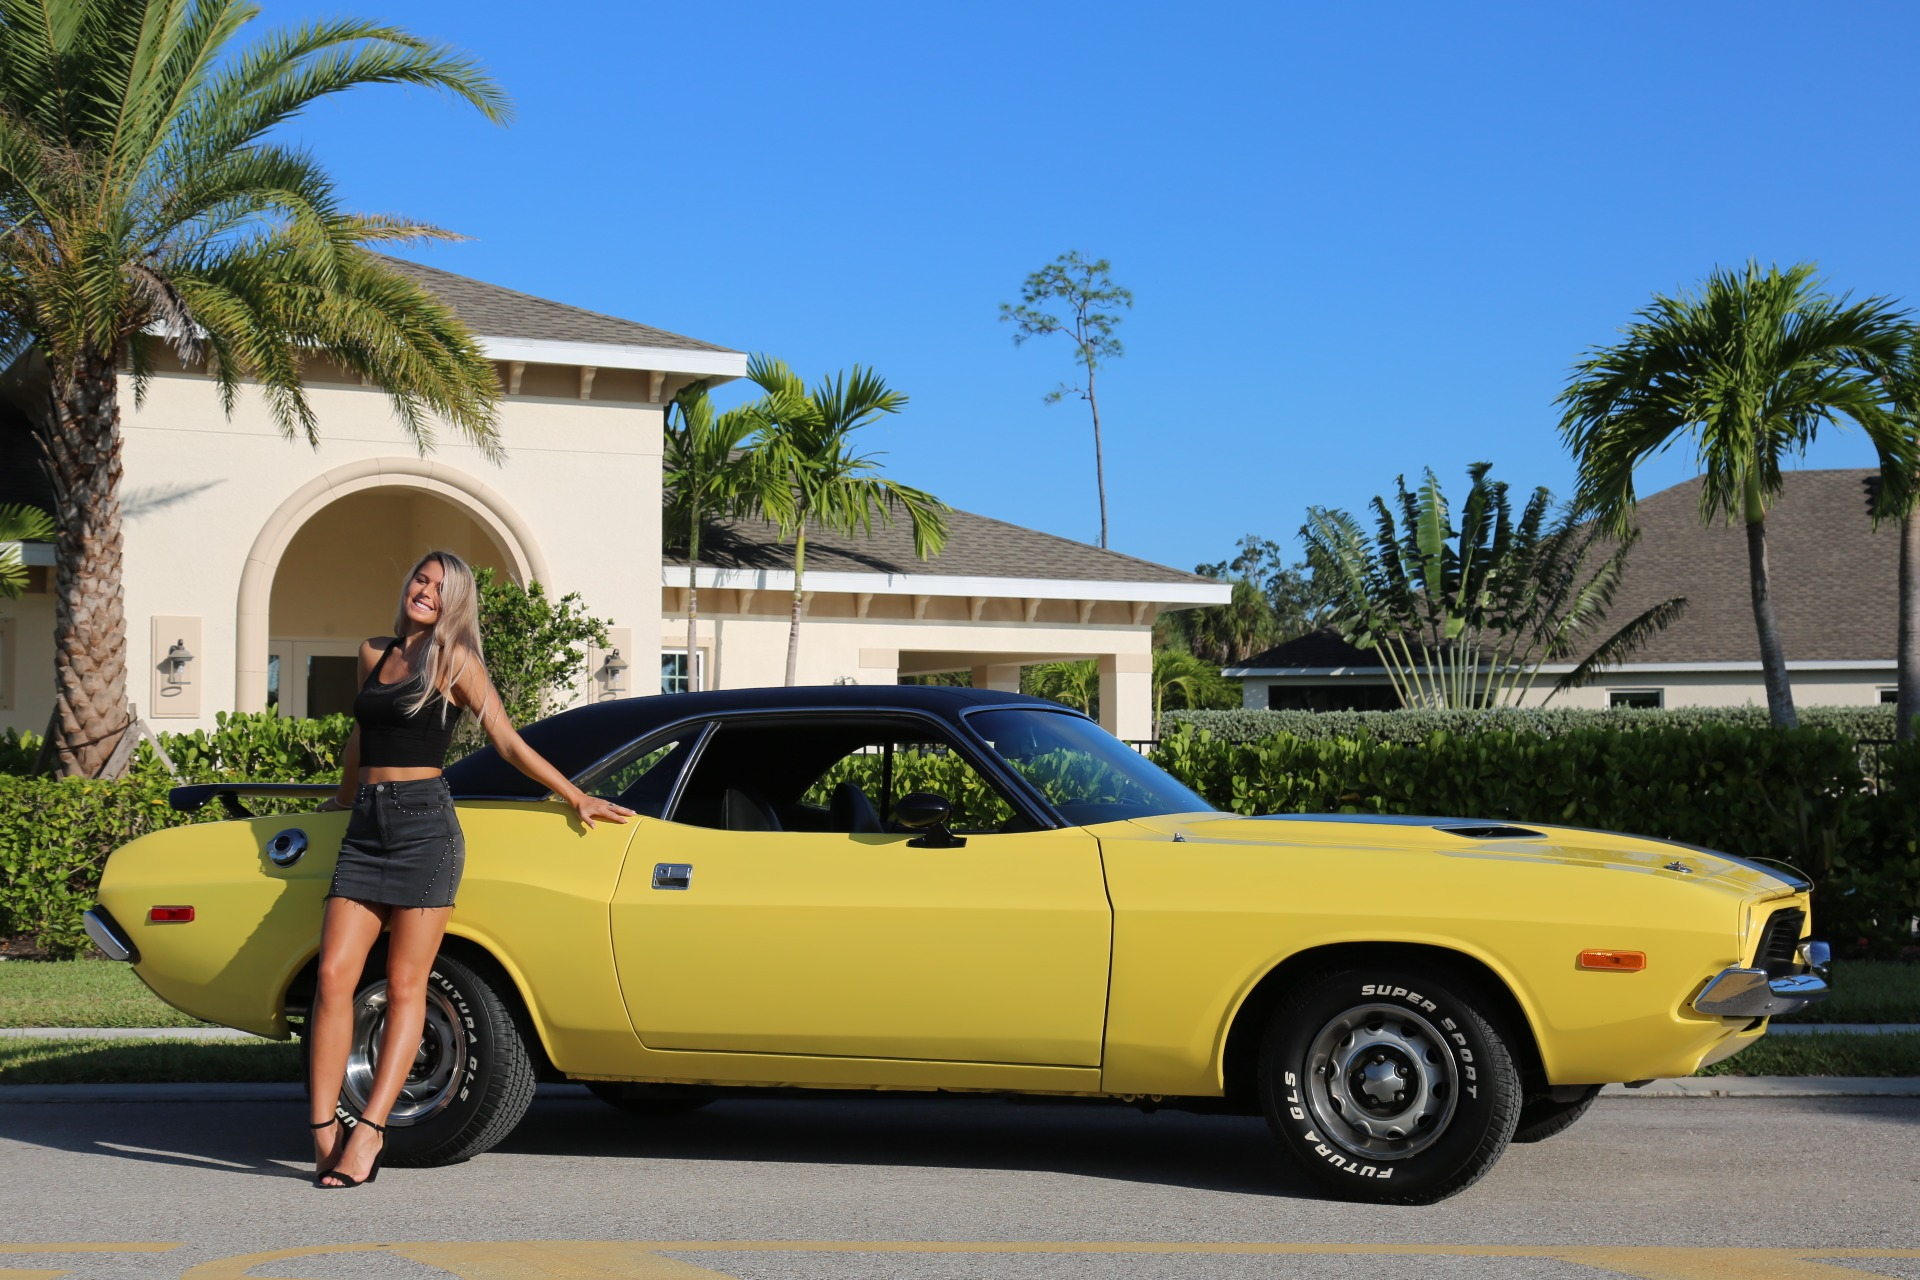 Used 1973 Dodge Challenger 440 V8 for sale Sold at Muscle Cars for Sale Inc. in Fort Myers FL 33912 8